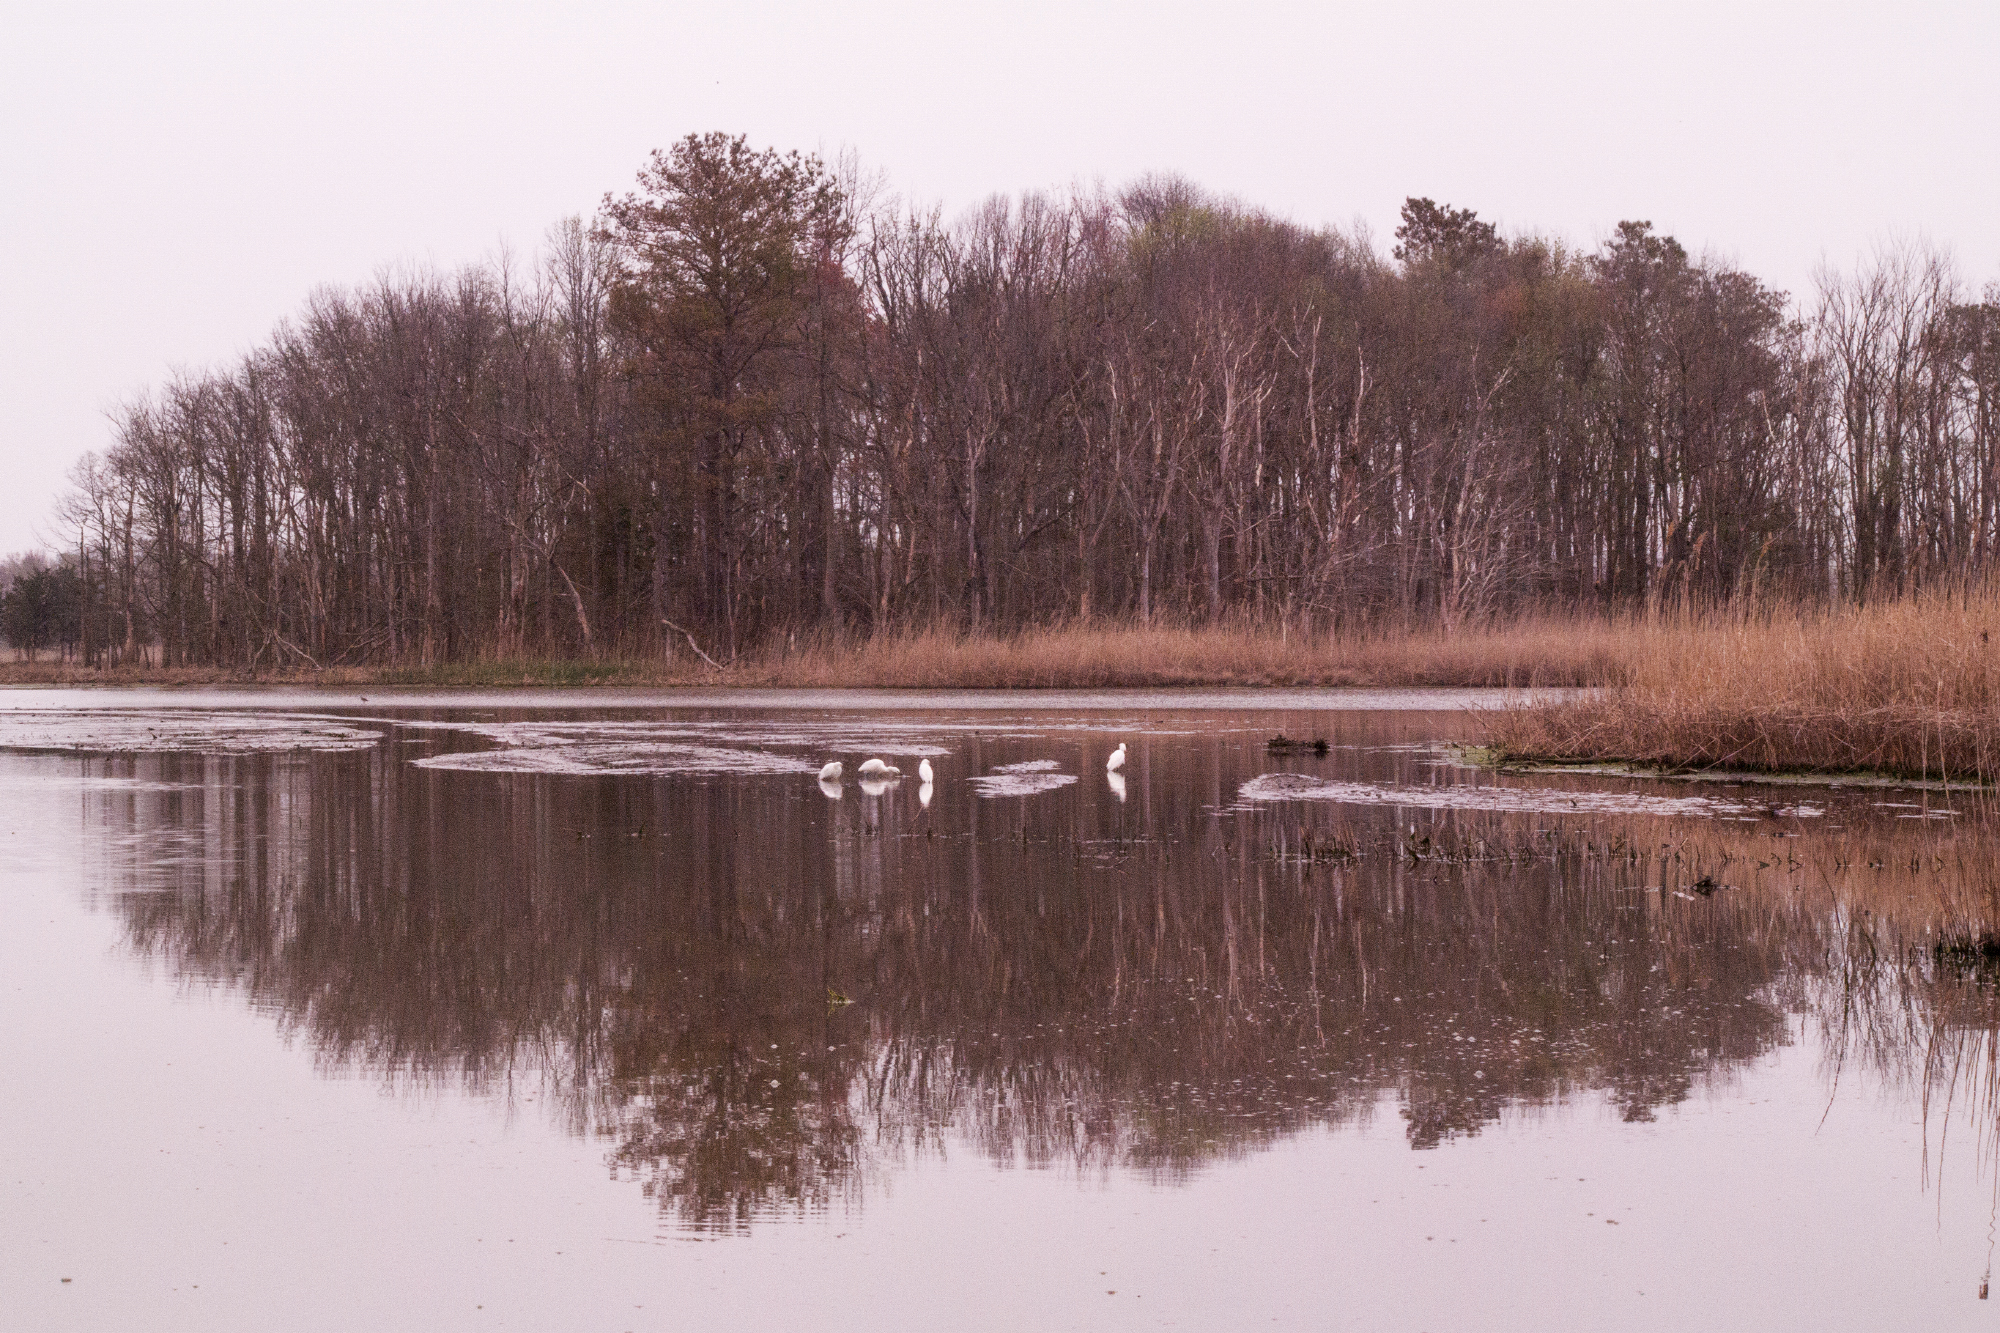 Photograph of a natural scene taken in Maryland in the winter. Moody photograph with trees reflecting in the water, birds, and other wildlife are in the image.